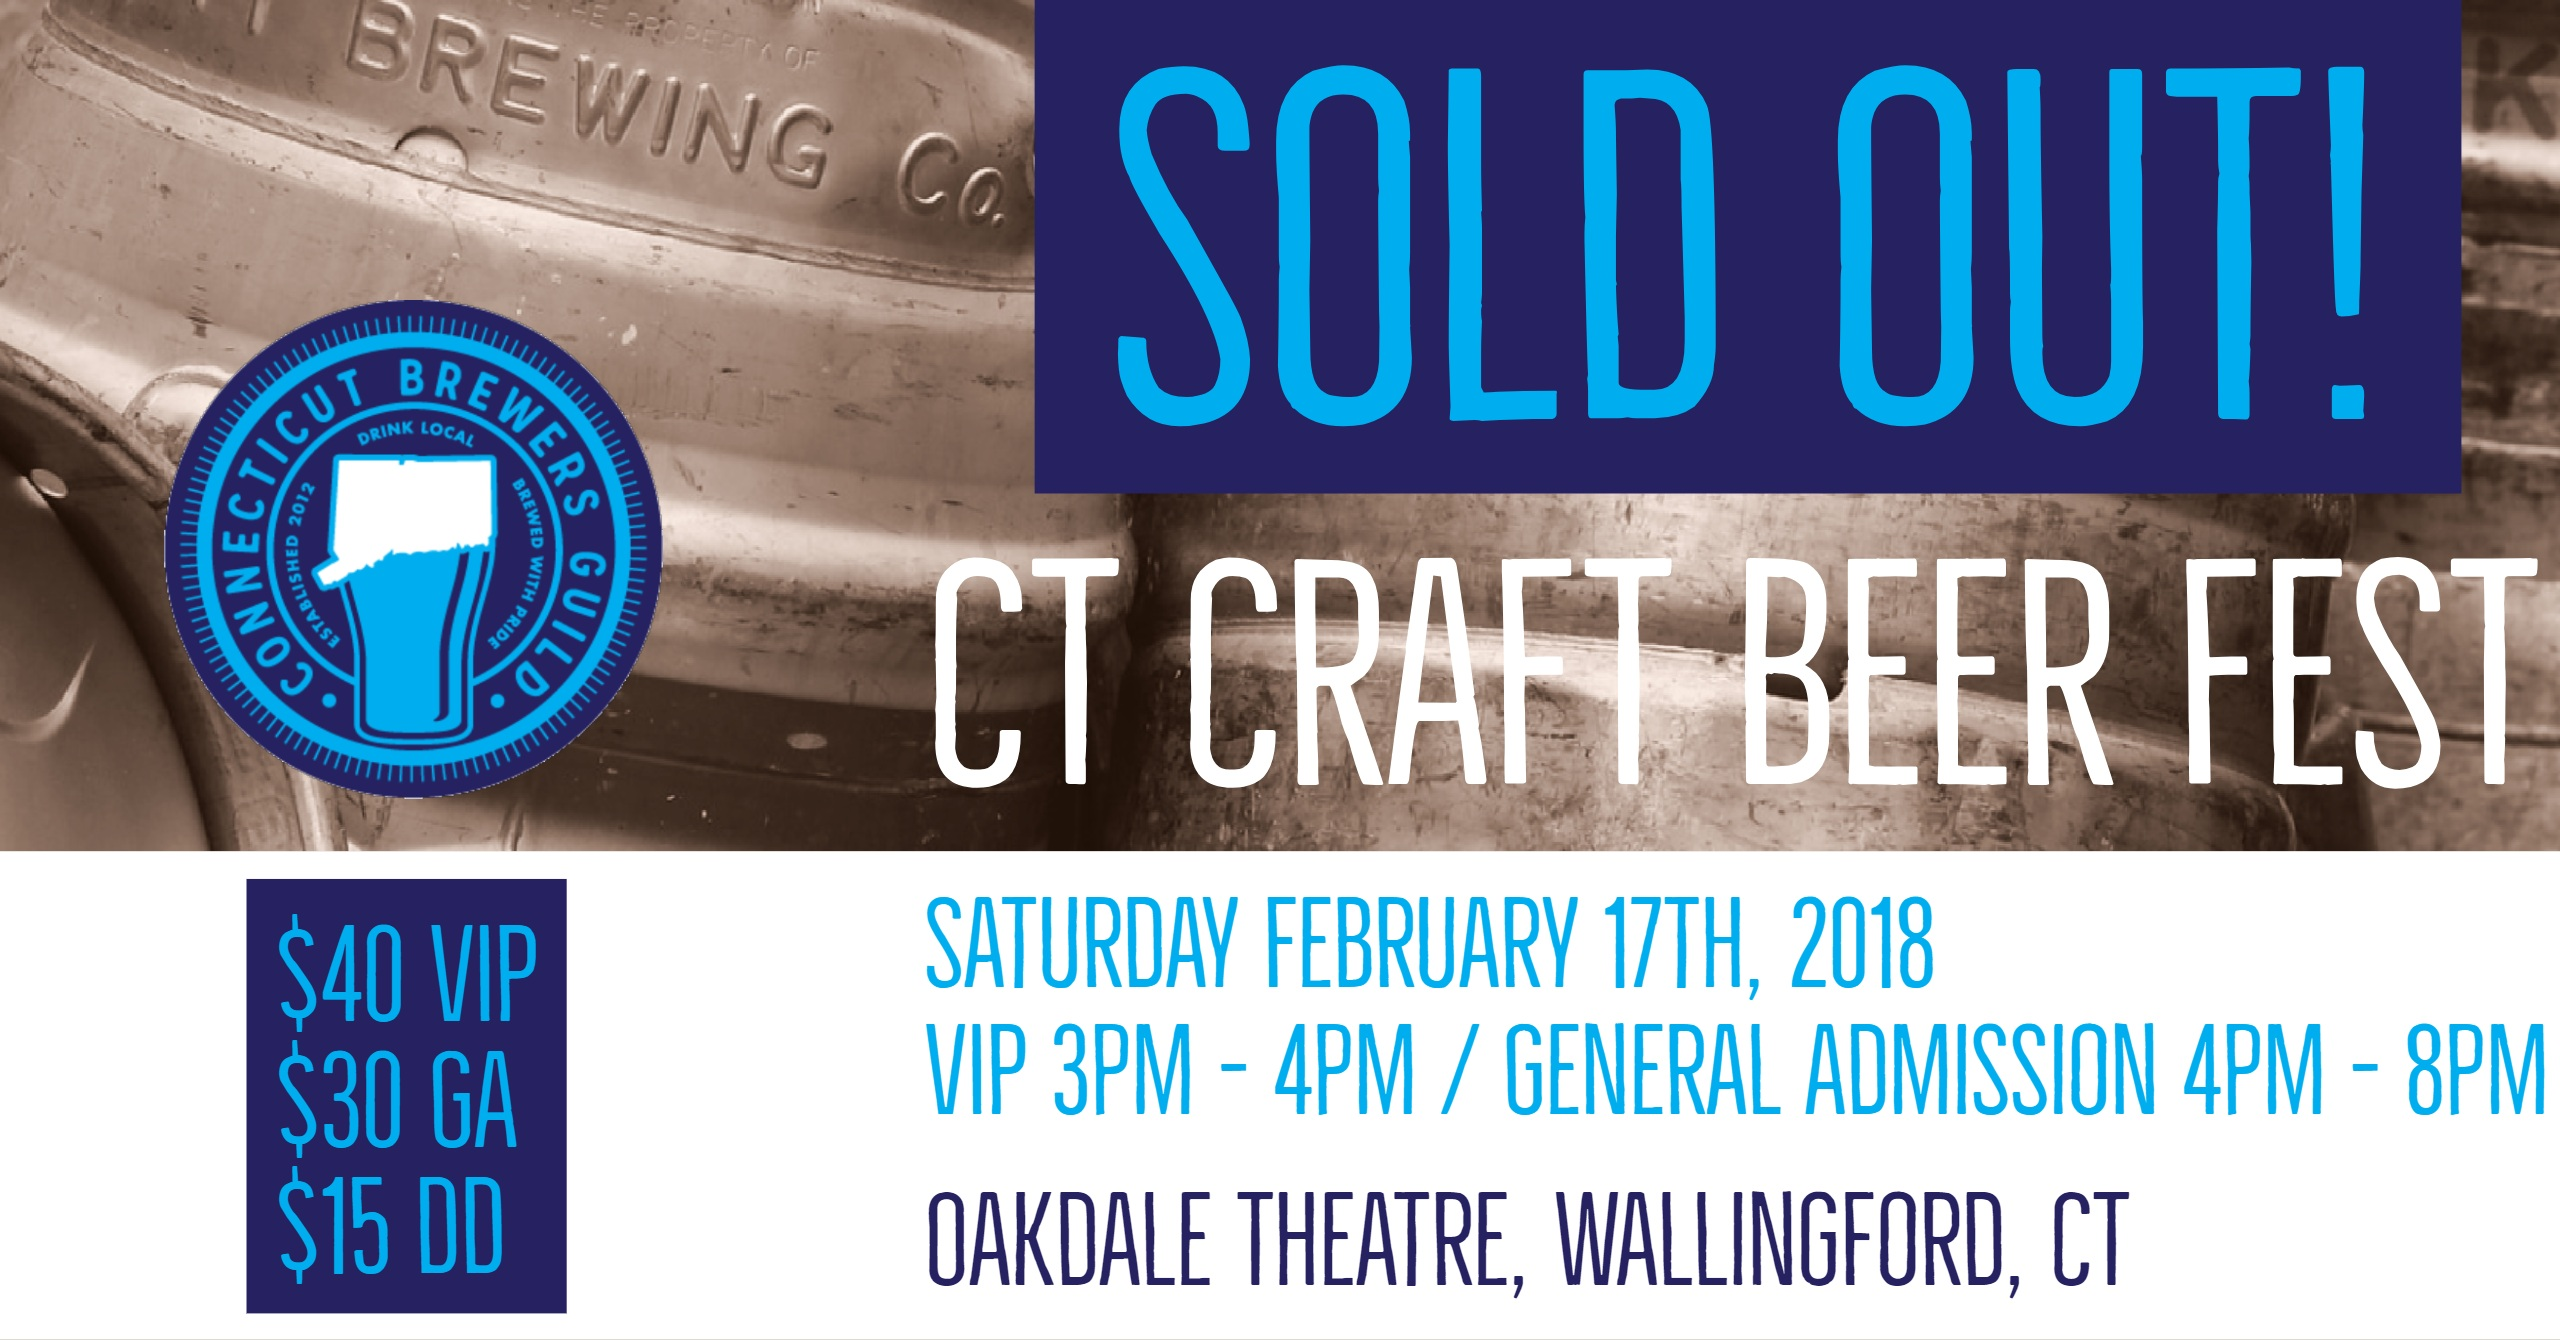 Tickets For Ct Craft Beer Fest In Wallingford From Beerfests